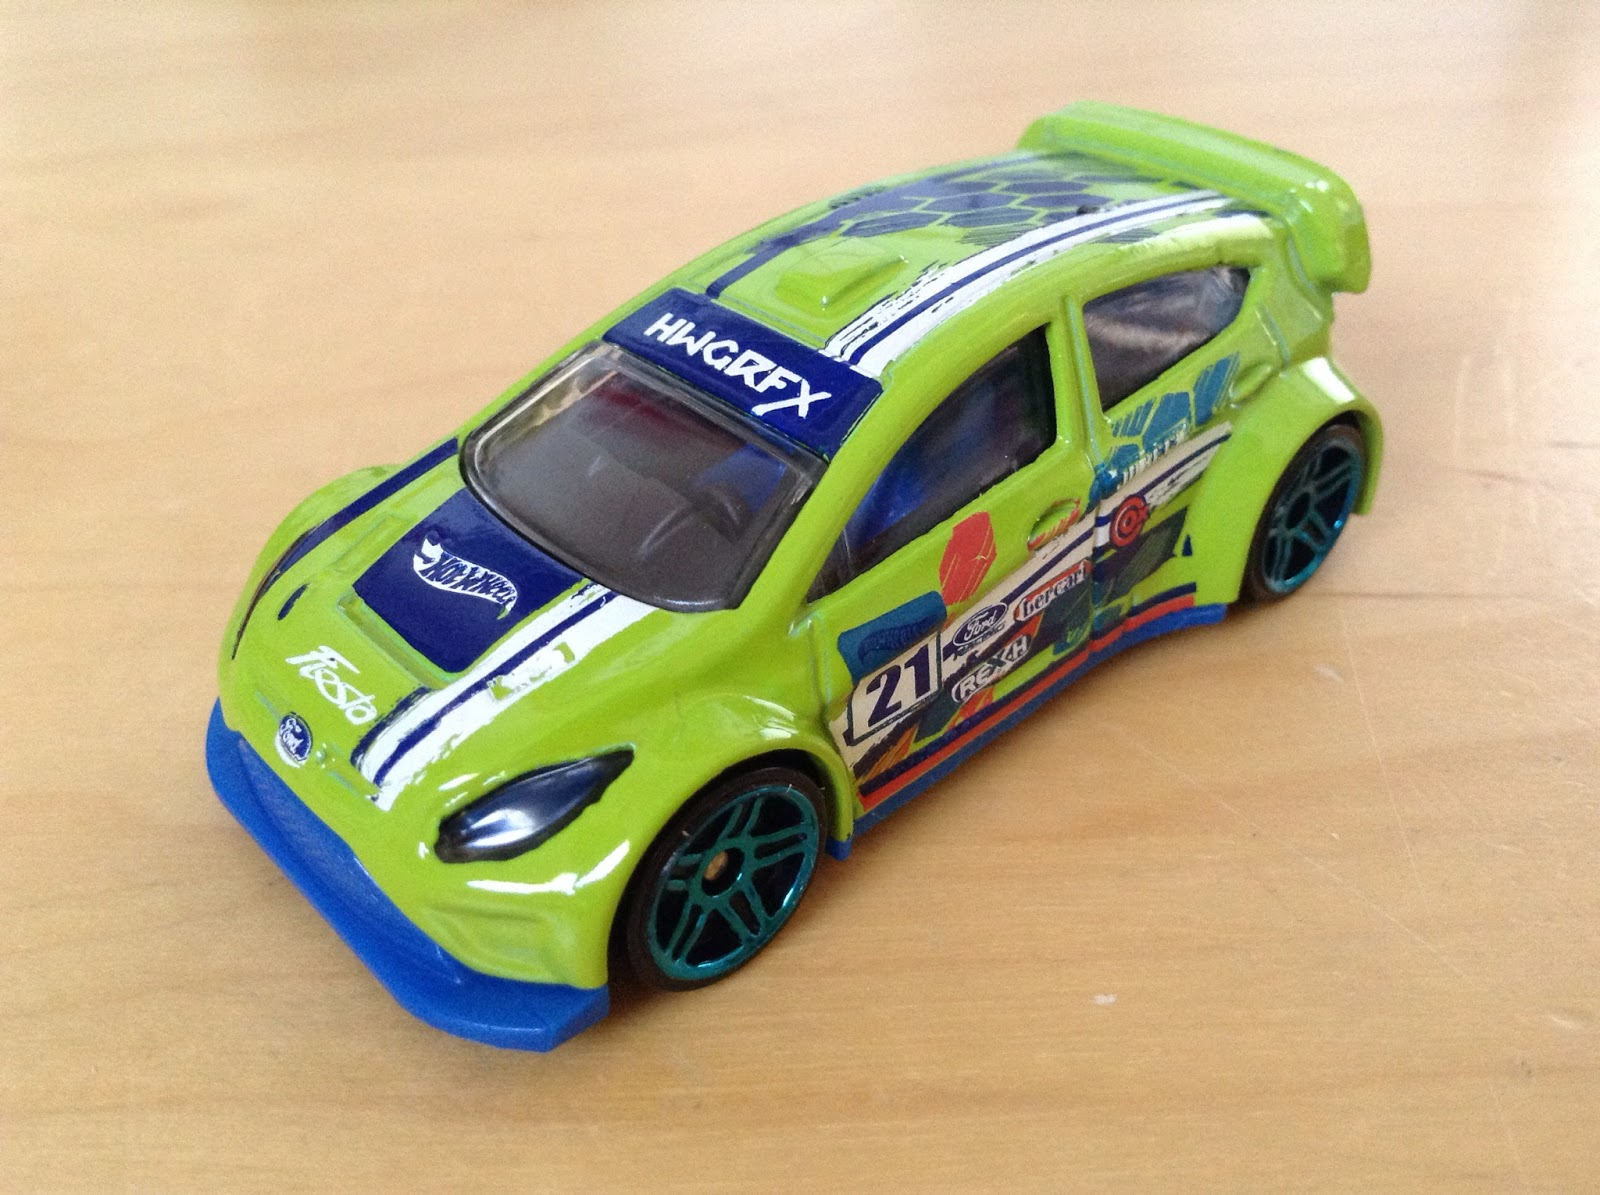 Julians Hot Wheels Blog 12 Ford Fiesta 2015 Road Rally Hotwheels Camaro Zl1 Green I Wasnt Originally Going To Get This But The Paint Job Was Too Hard Resist For Me Really Like Its Aqua Colored Rims